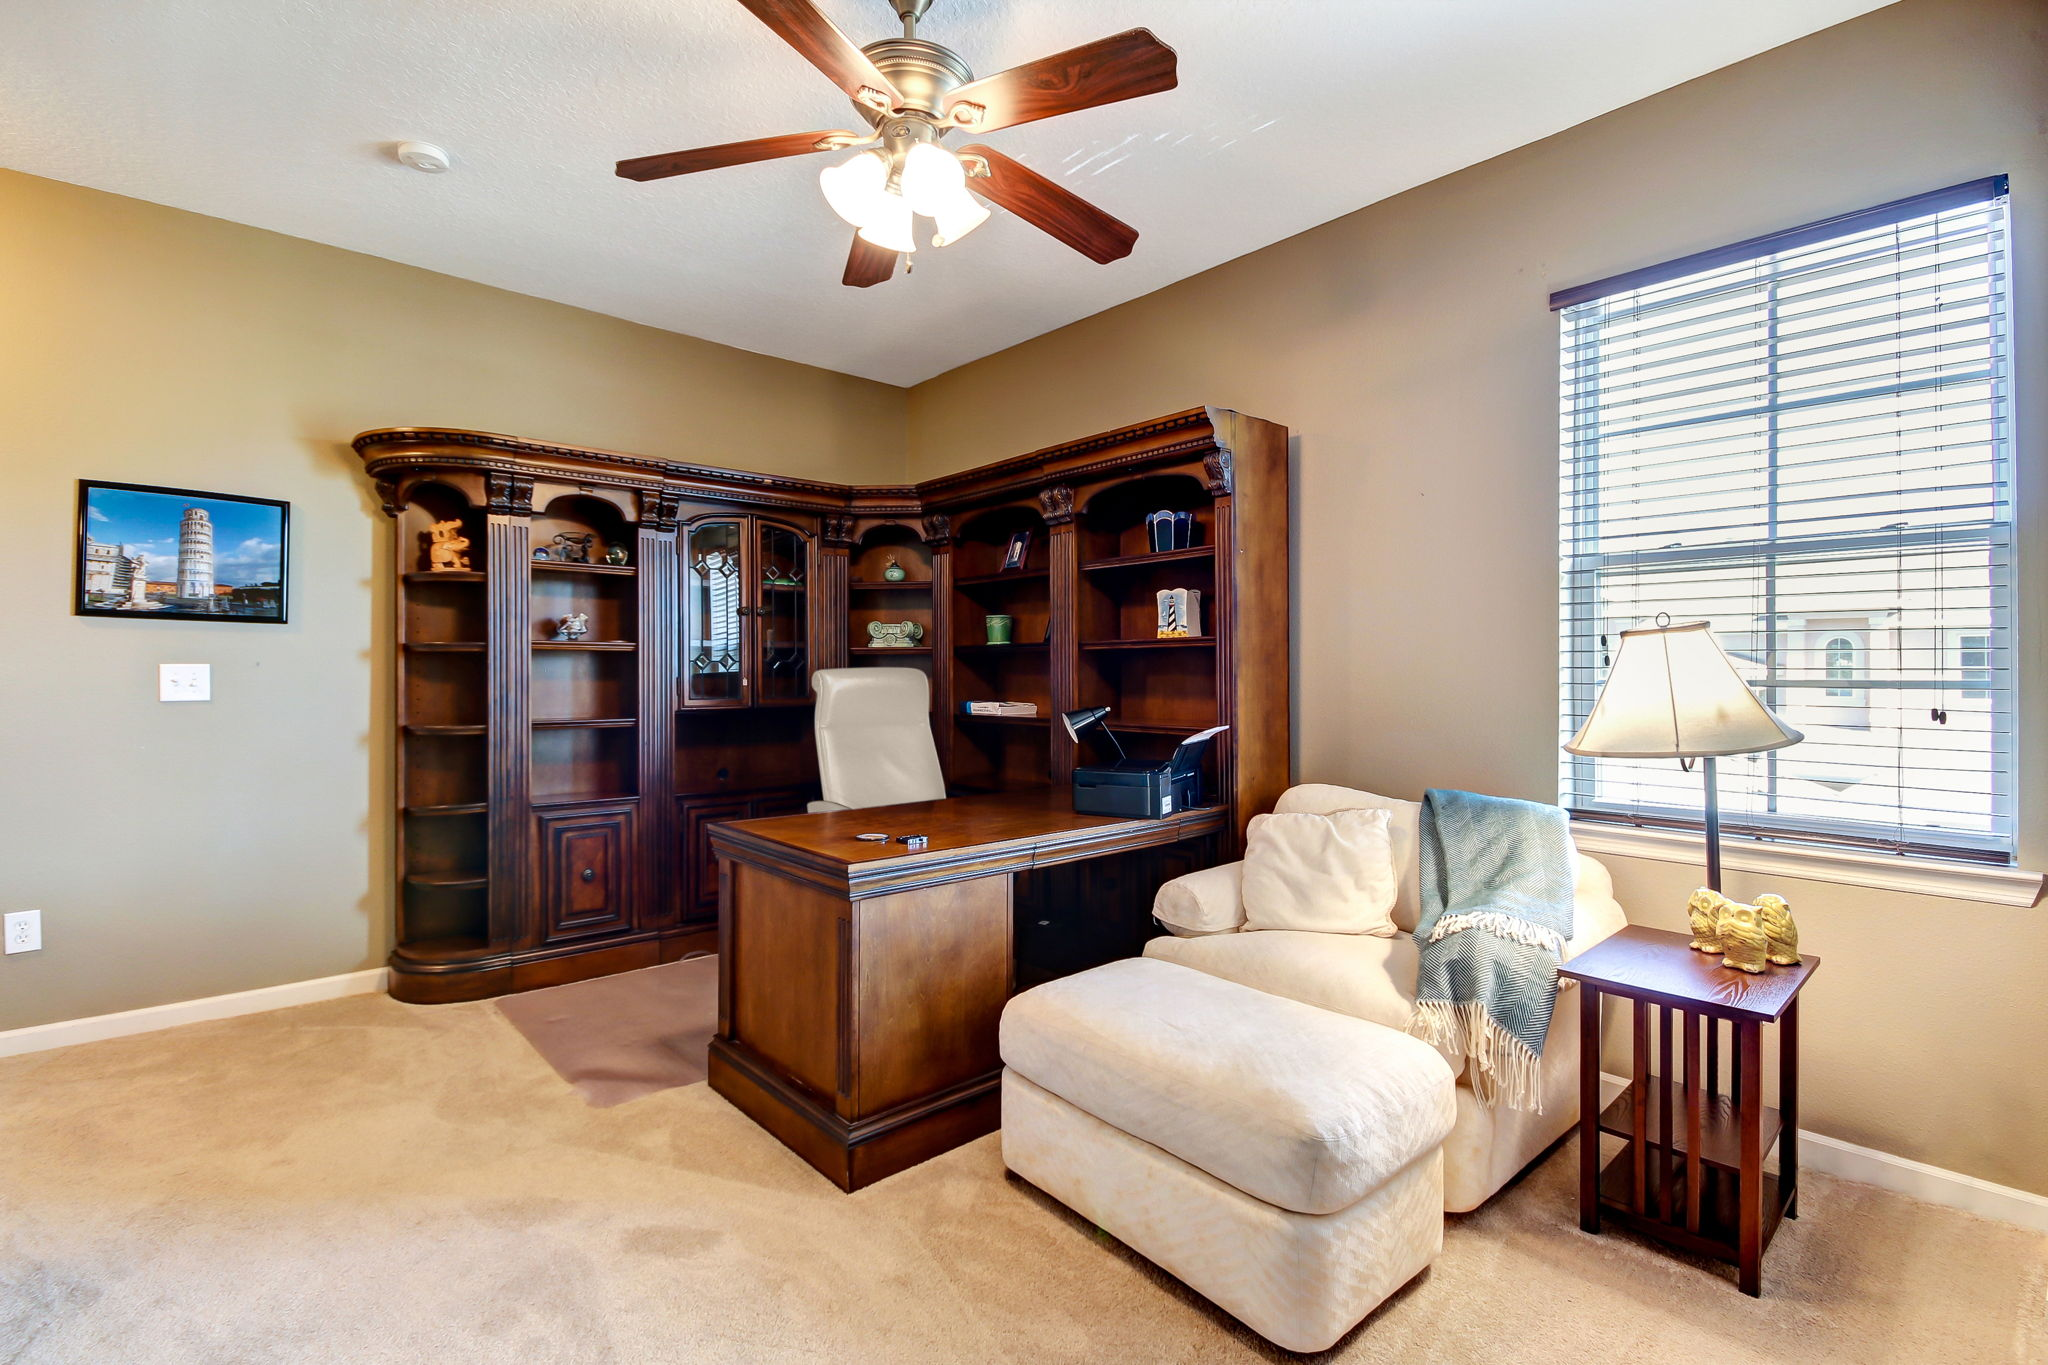 Upstairs greets you with a bonus loft, perfect for an office